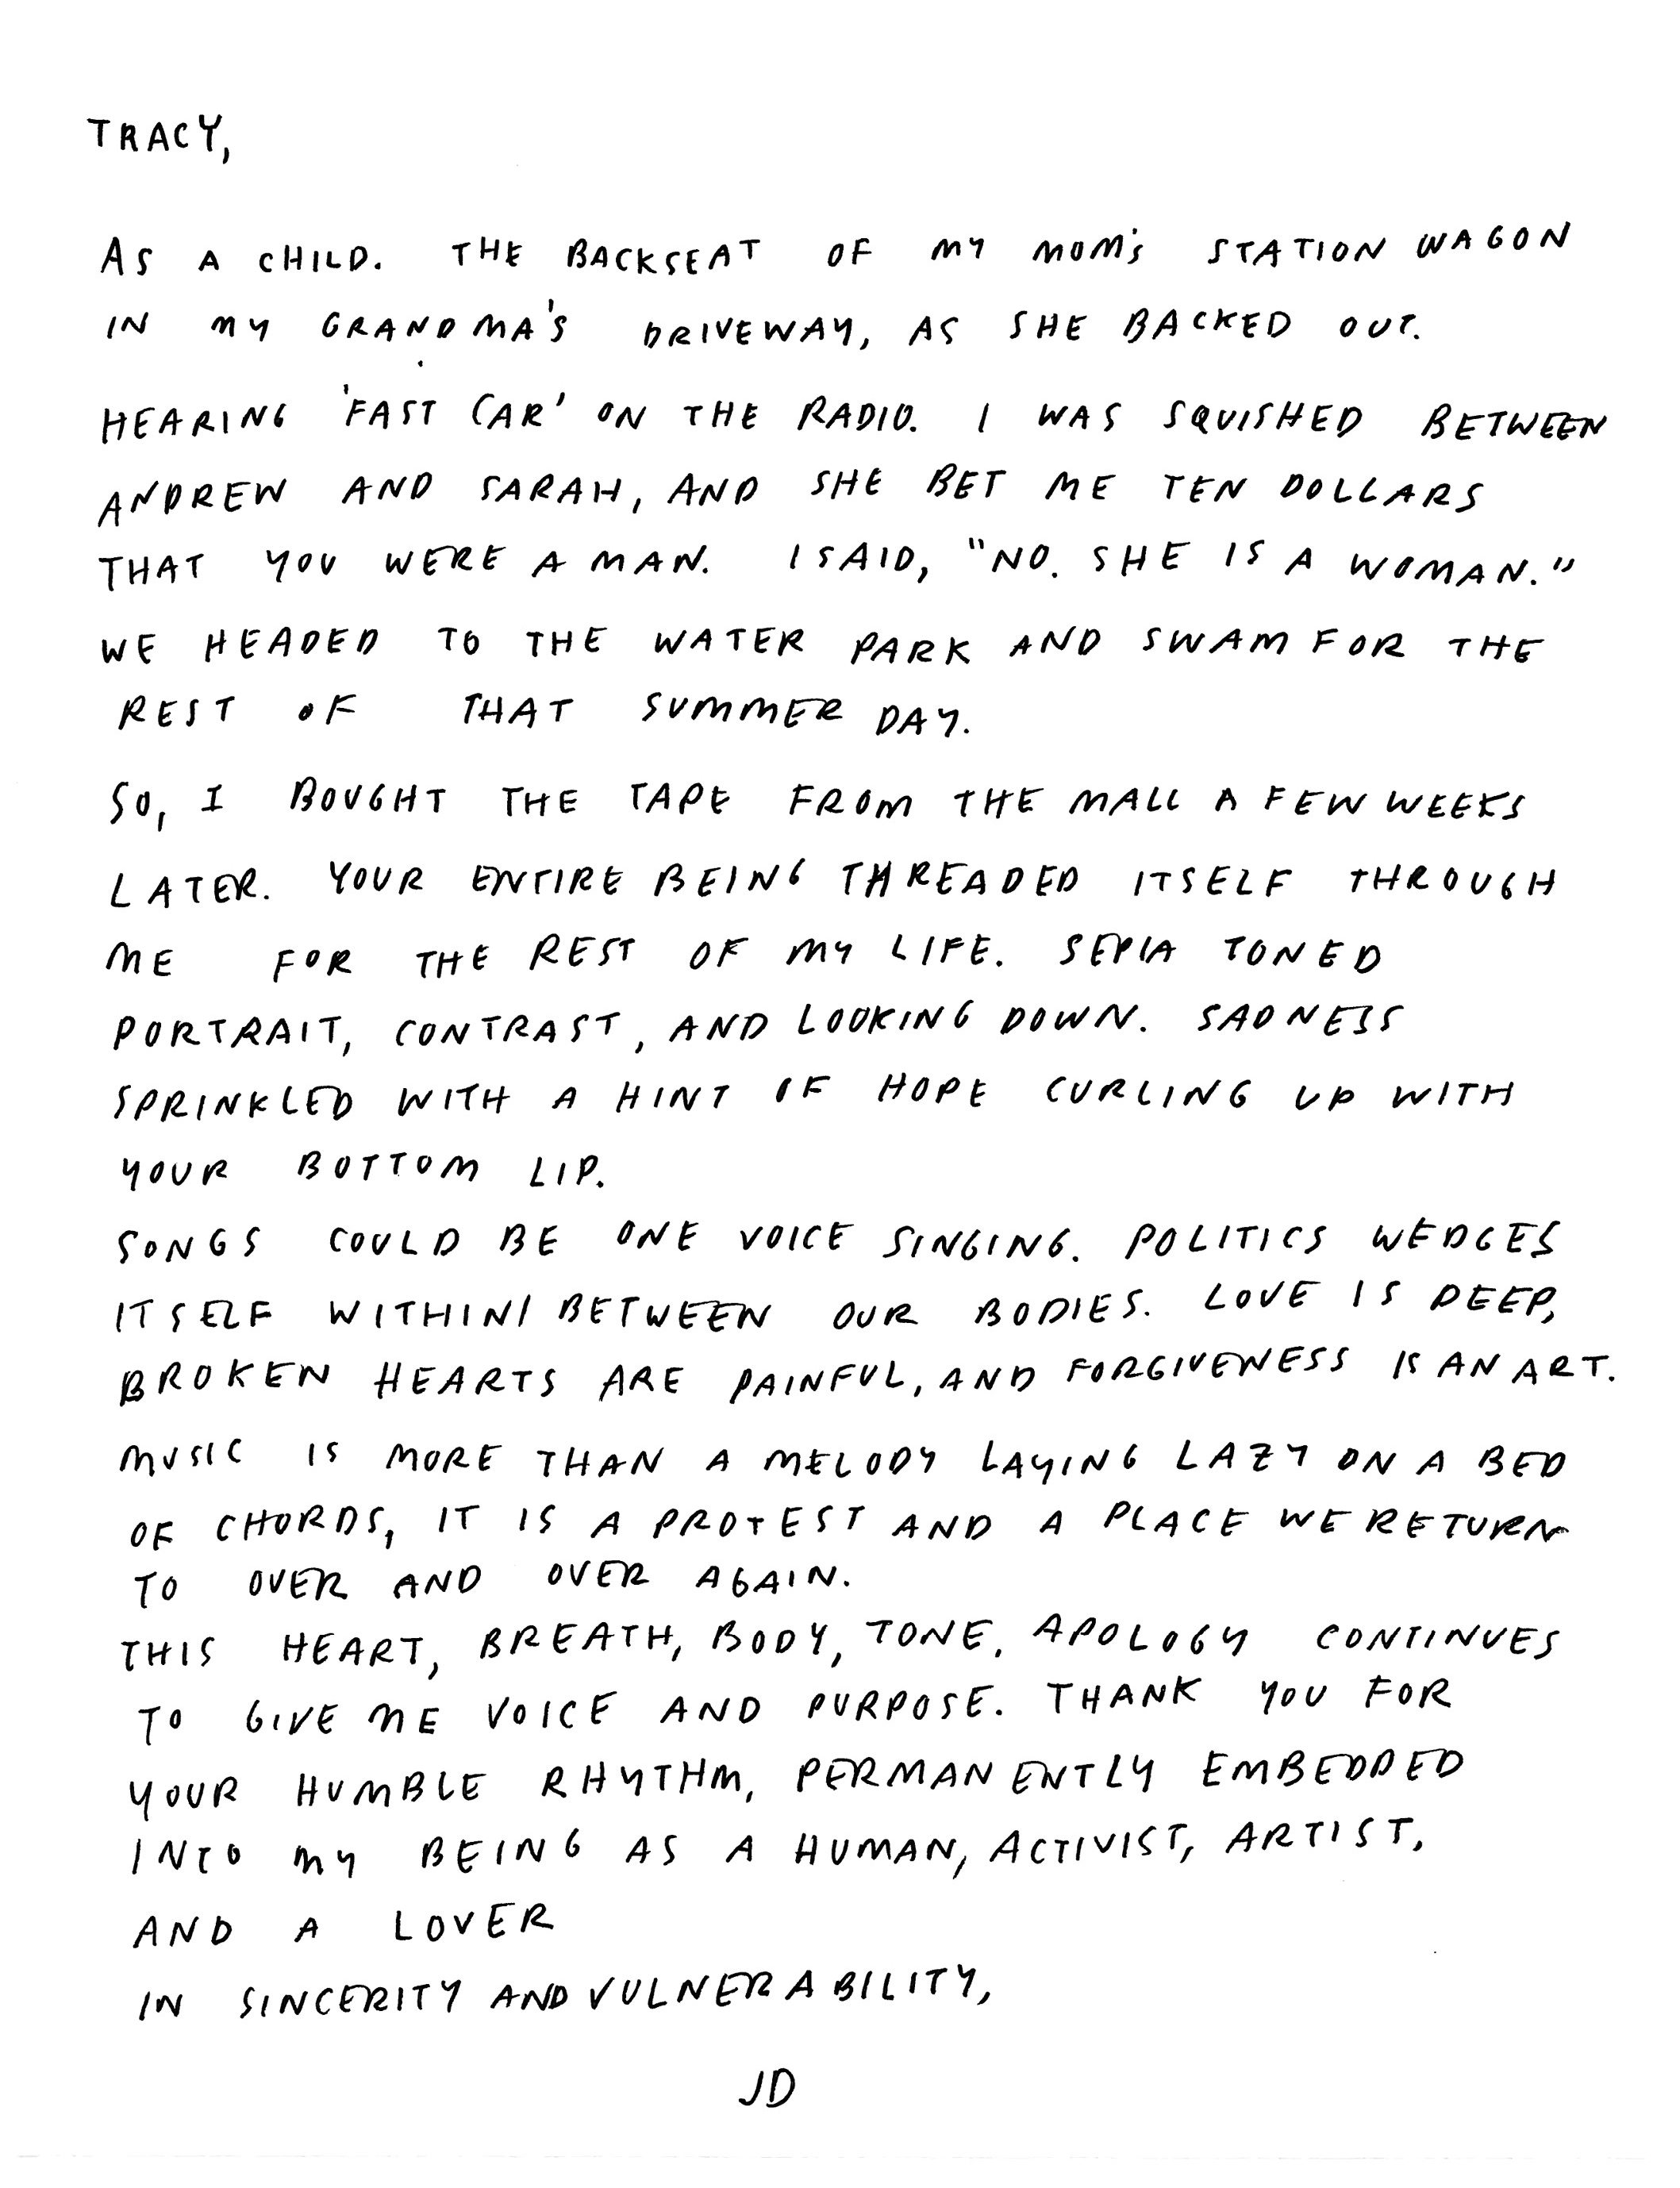 crushfanzine-fan-letter-jd-samson-to-tracy-chapman-1